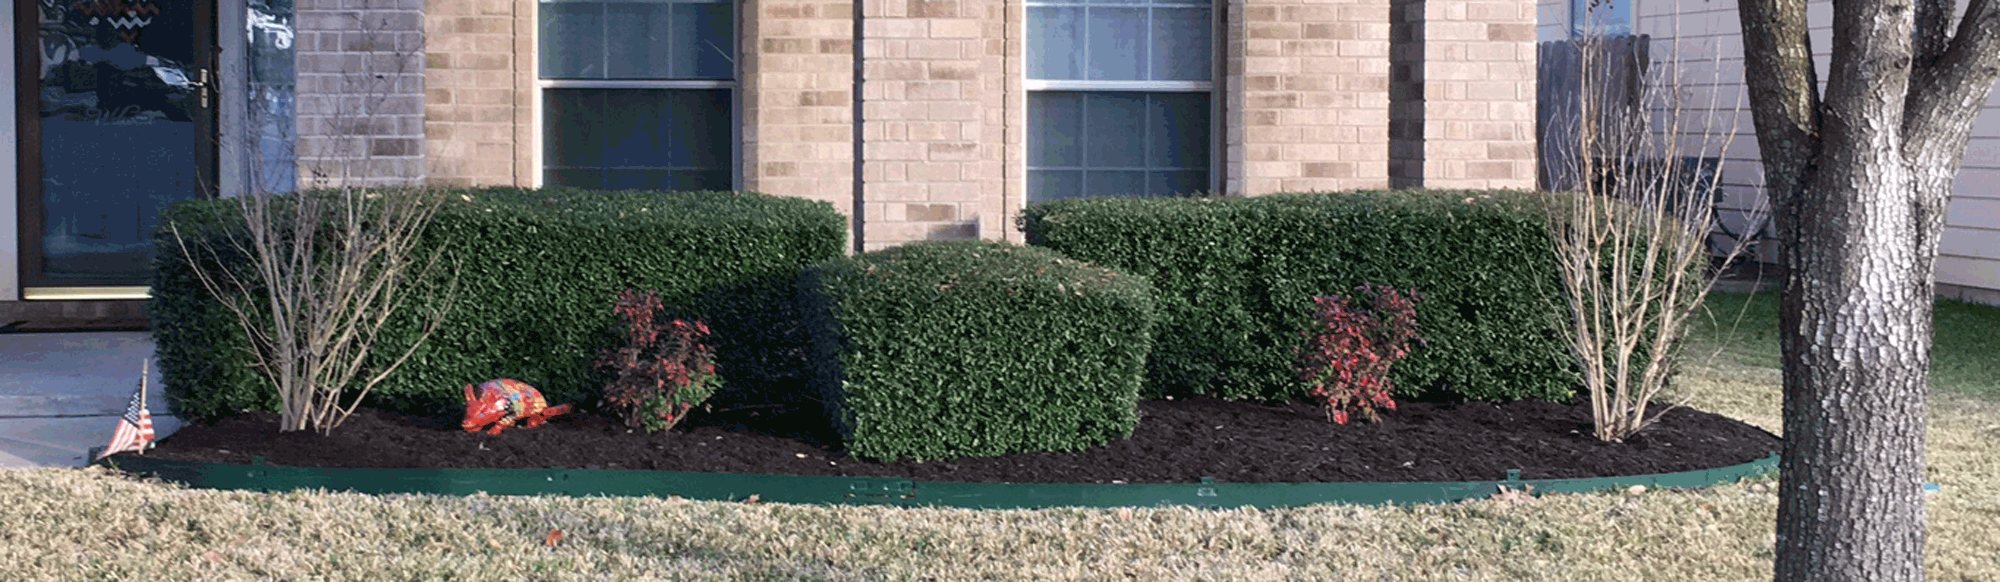 Residential Lawn Maintenance Image Hutto, TX